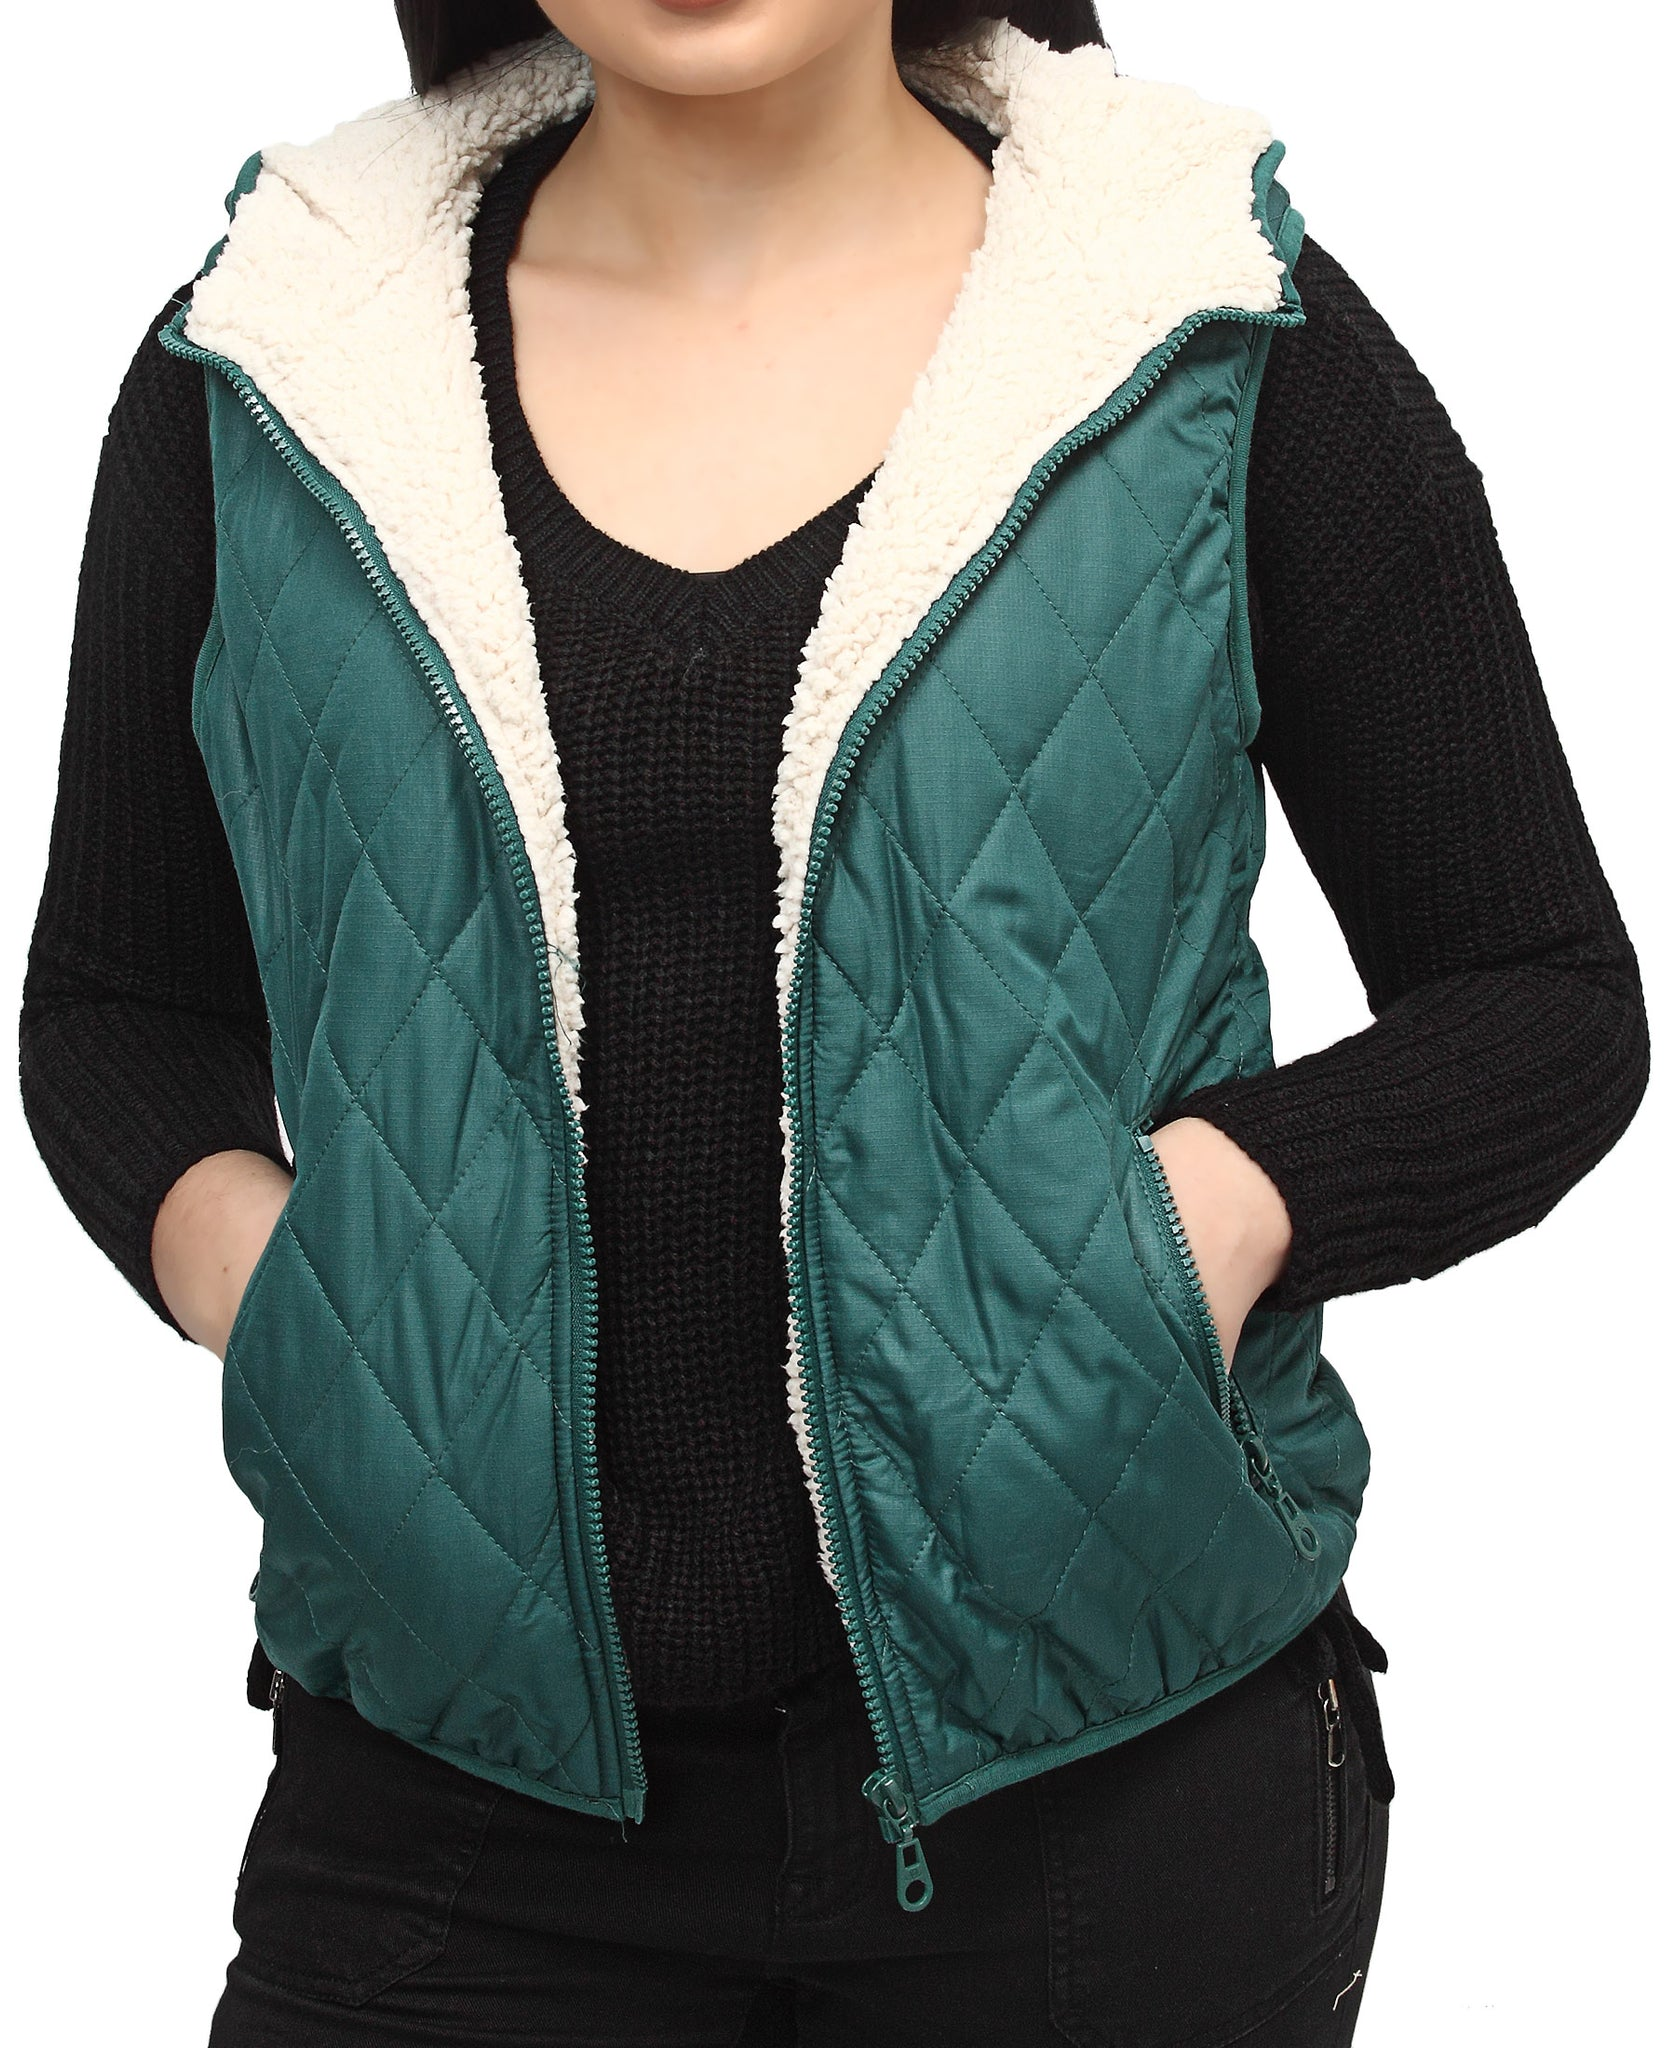 Sleeveless Jacket - Green